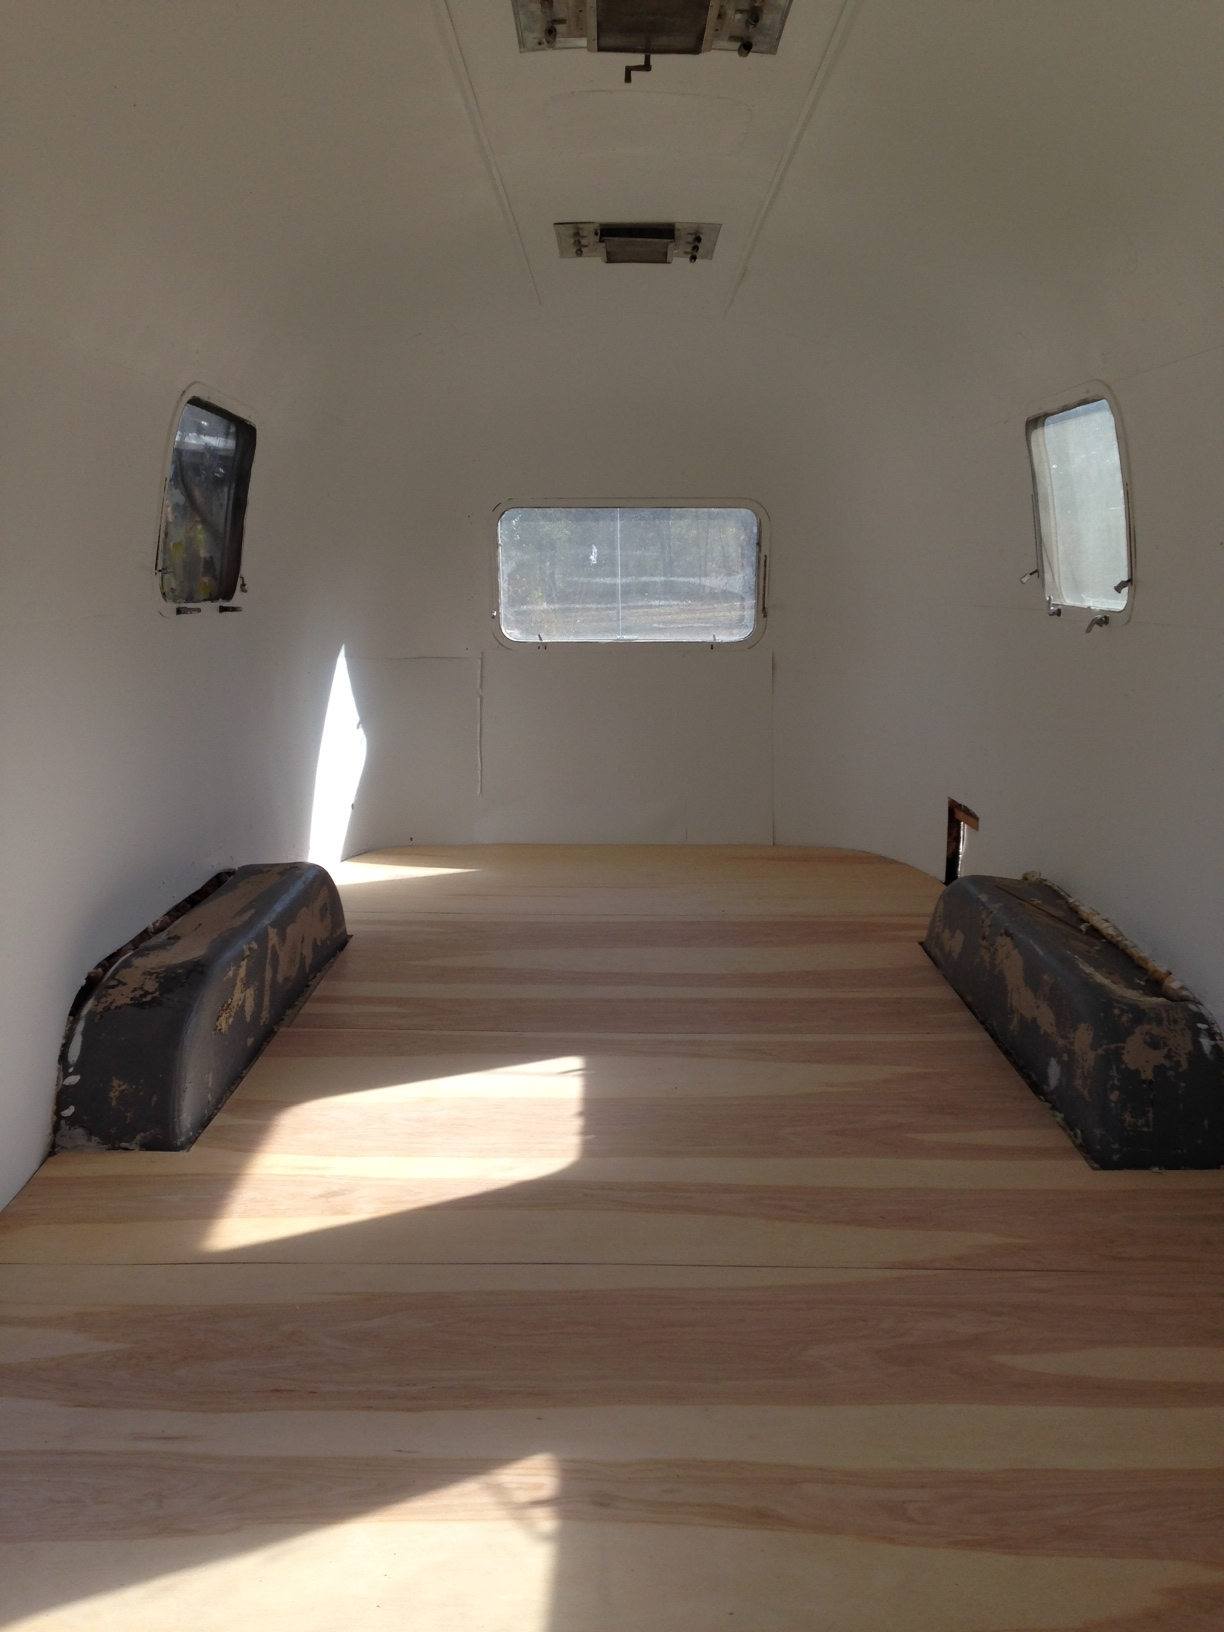 Airstream Painted with Birch Plywood Flooring